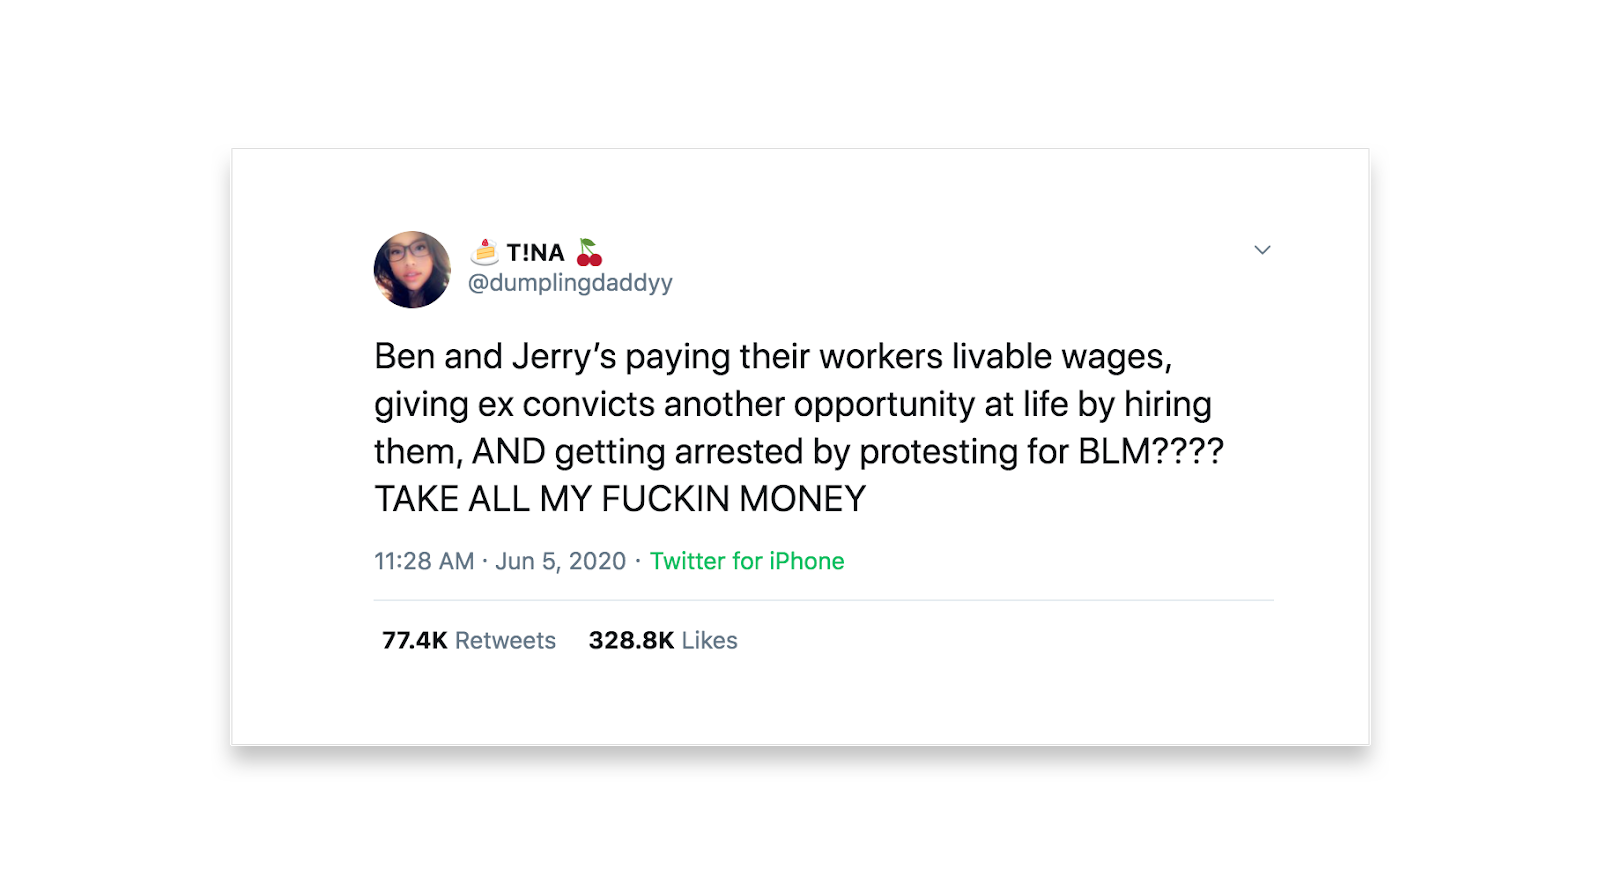 A tweet by T!NA reads Ben and Jerry's paying their workers livable wages, giving ex convicts another opportunity at life by hiring them, And getting arrested by protecting for BLM???? TAKE ALL MY FUCKIN MONEY